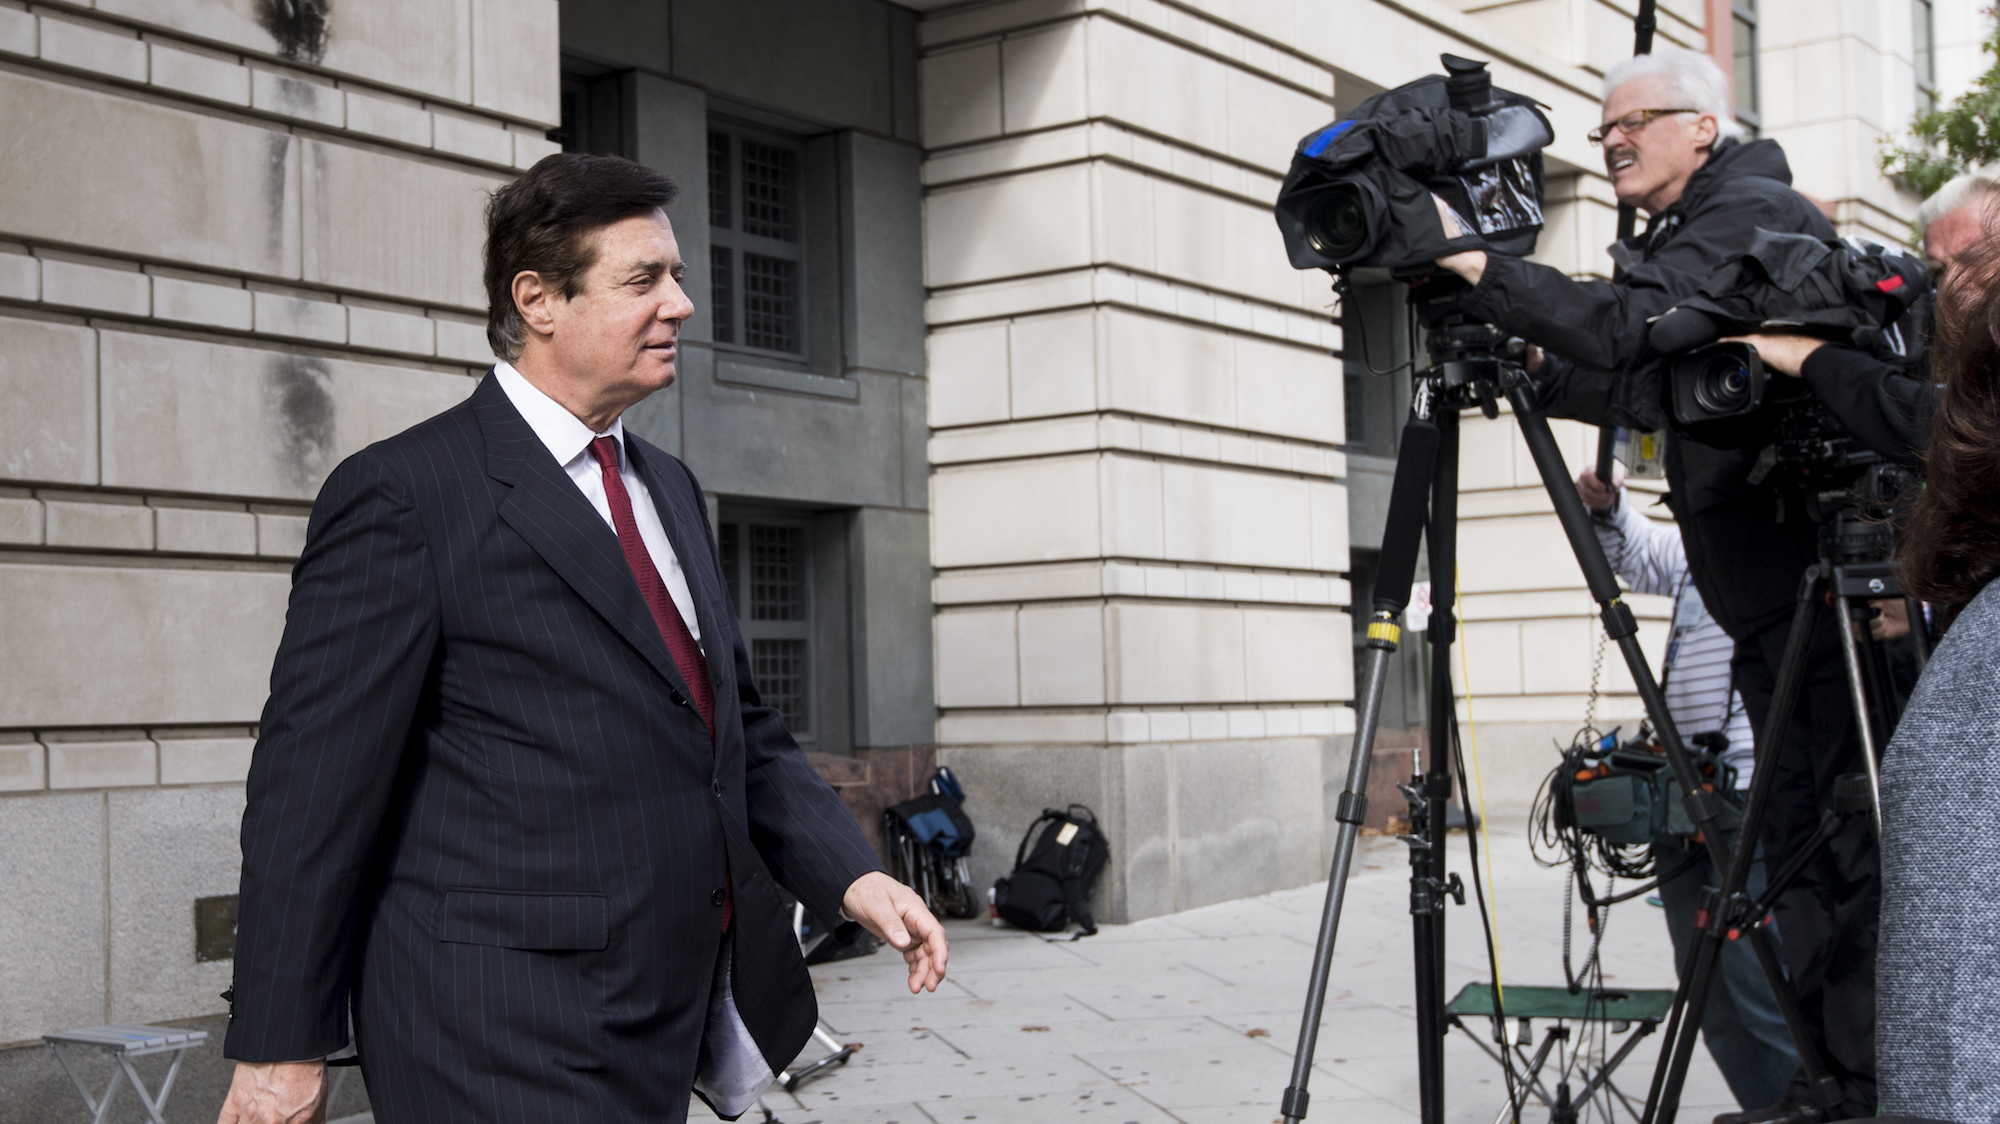 Judge sends Paul Manafort to jail, pending trial